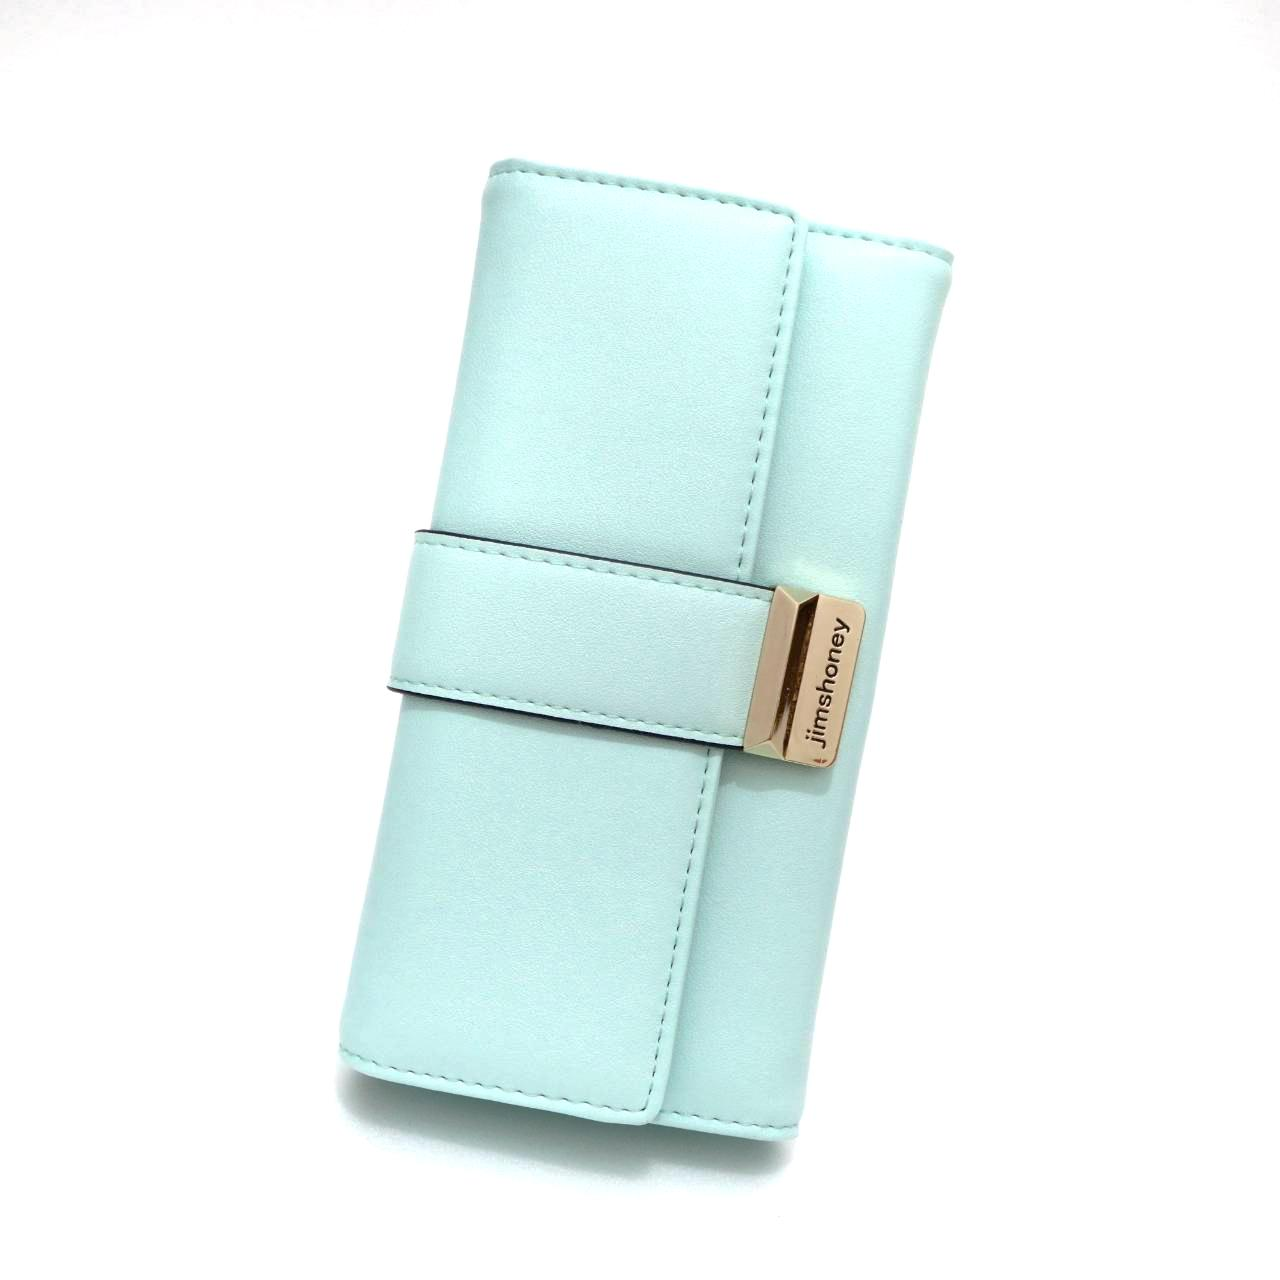 Jims Honey - Dompet Fashion Import - Amour Wallet (Tosca)